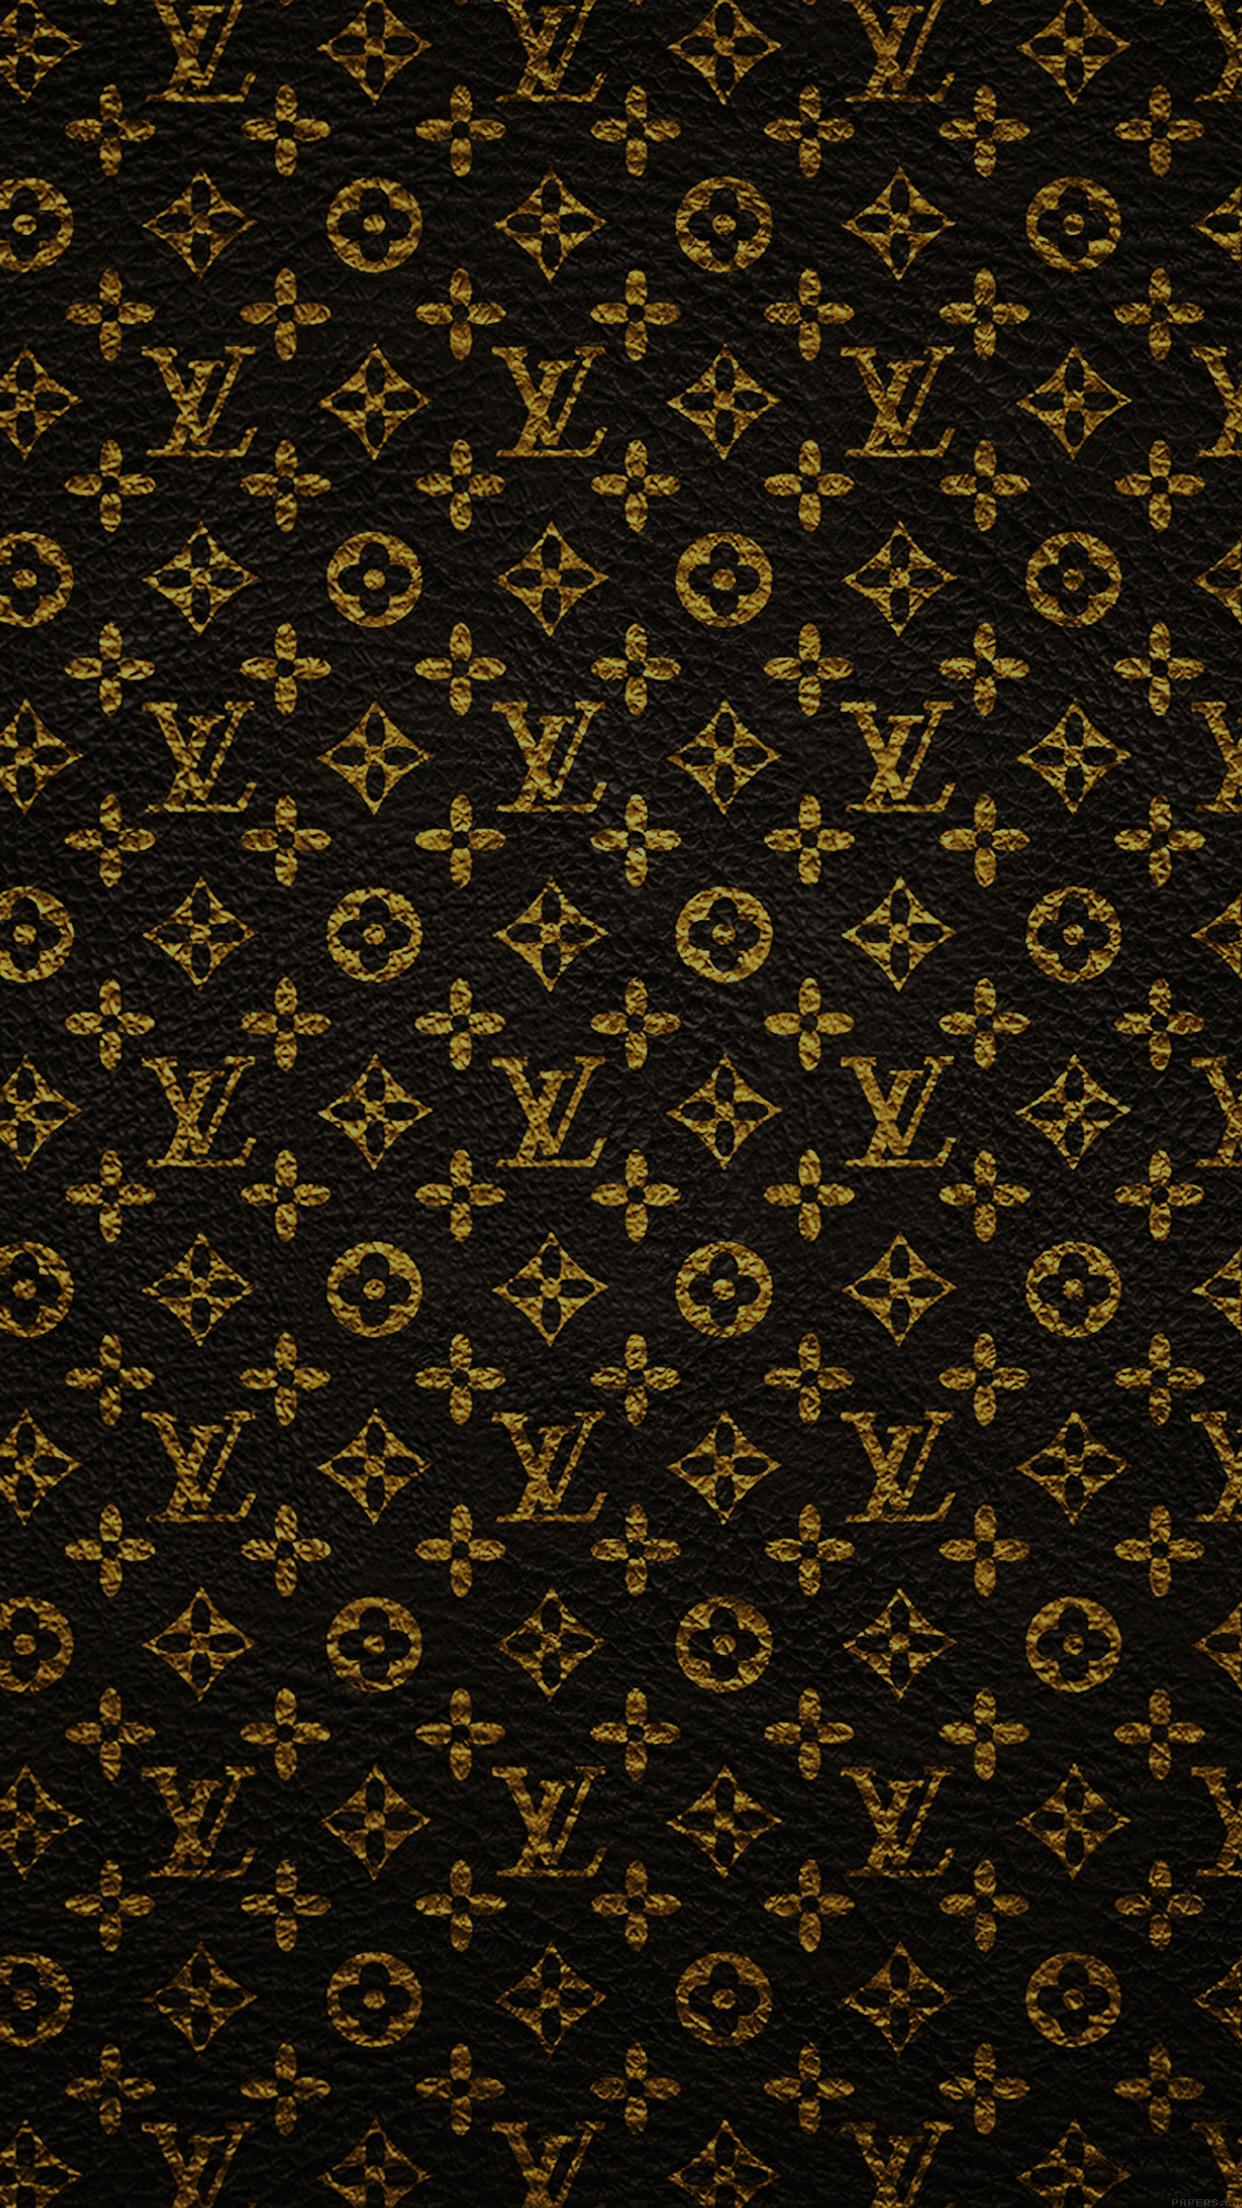 Luxury louis vuitton wallpaper for iphone x 8 7 6 for Expensive wallpaper